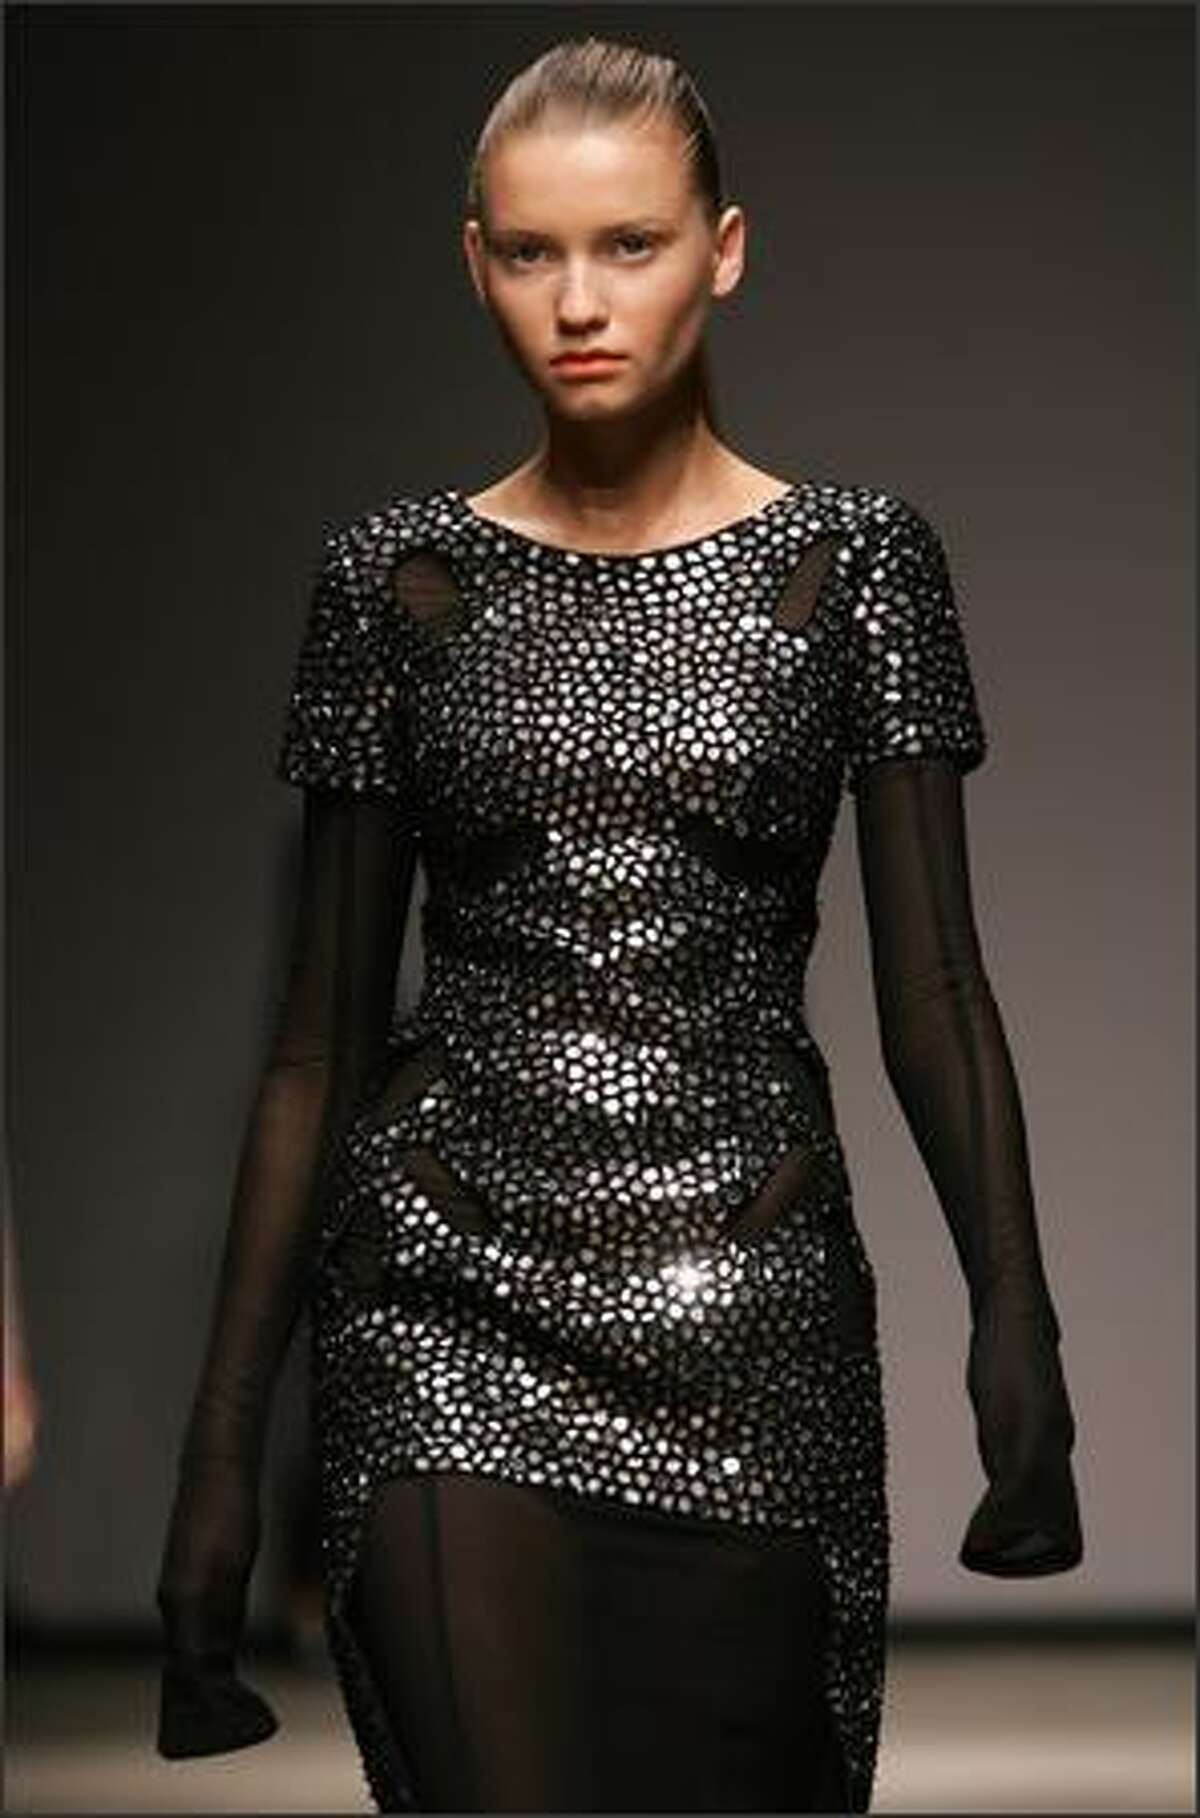 A model walks down the catwalk during the Marios Schwab fall 2008 show in London.